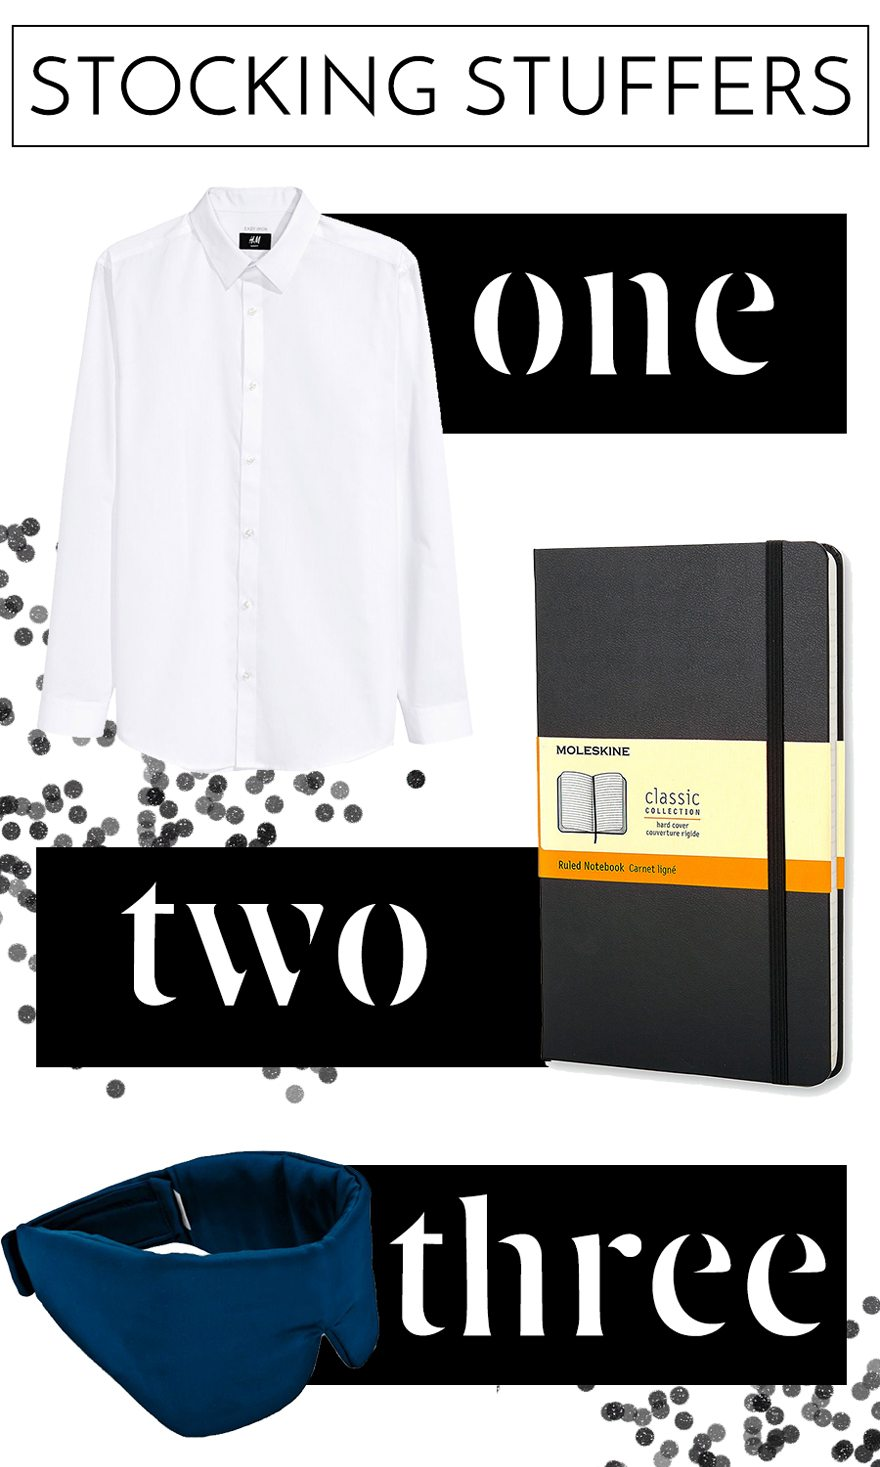 HIM gift guide by Michael | by the skinny confidential